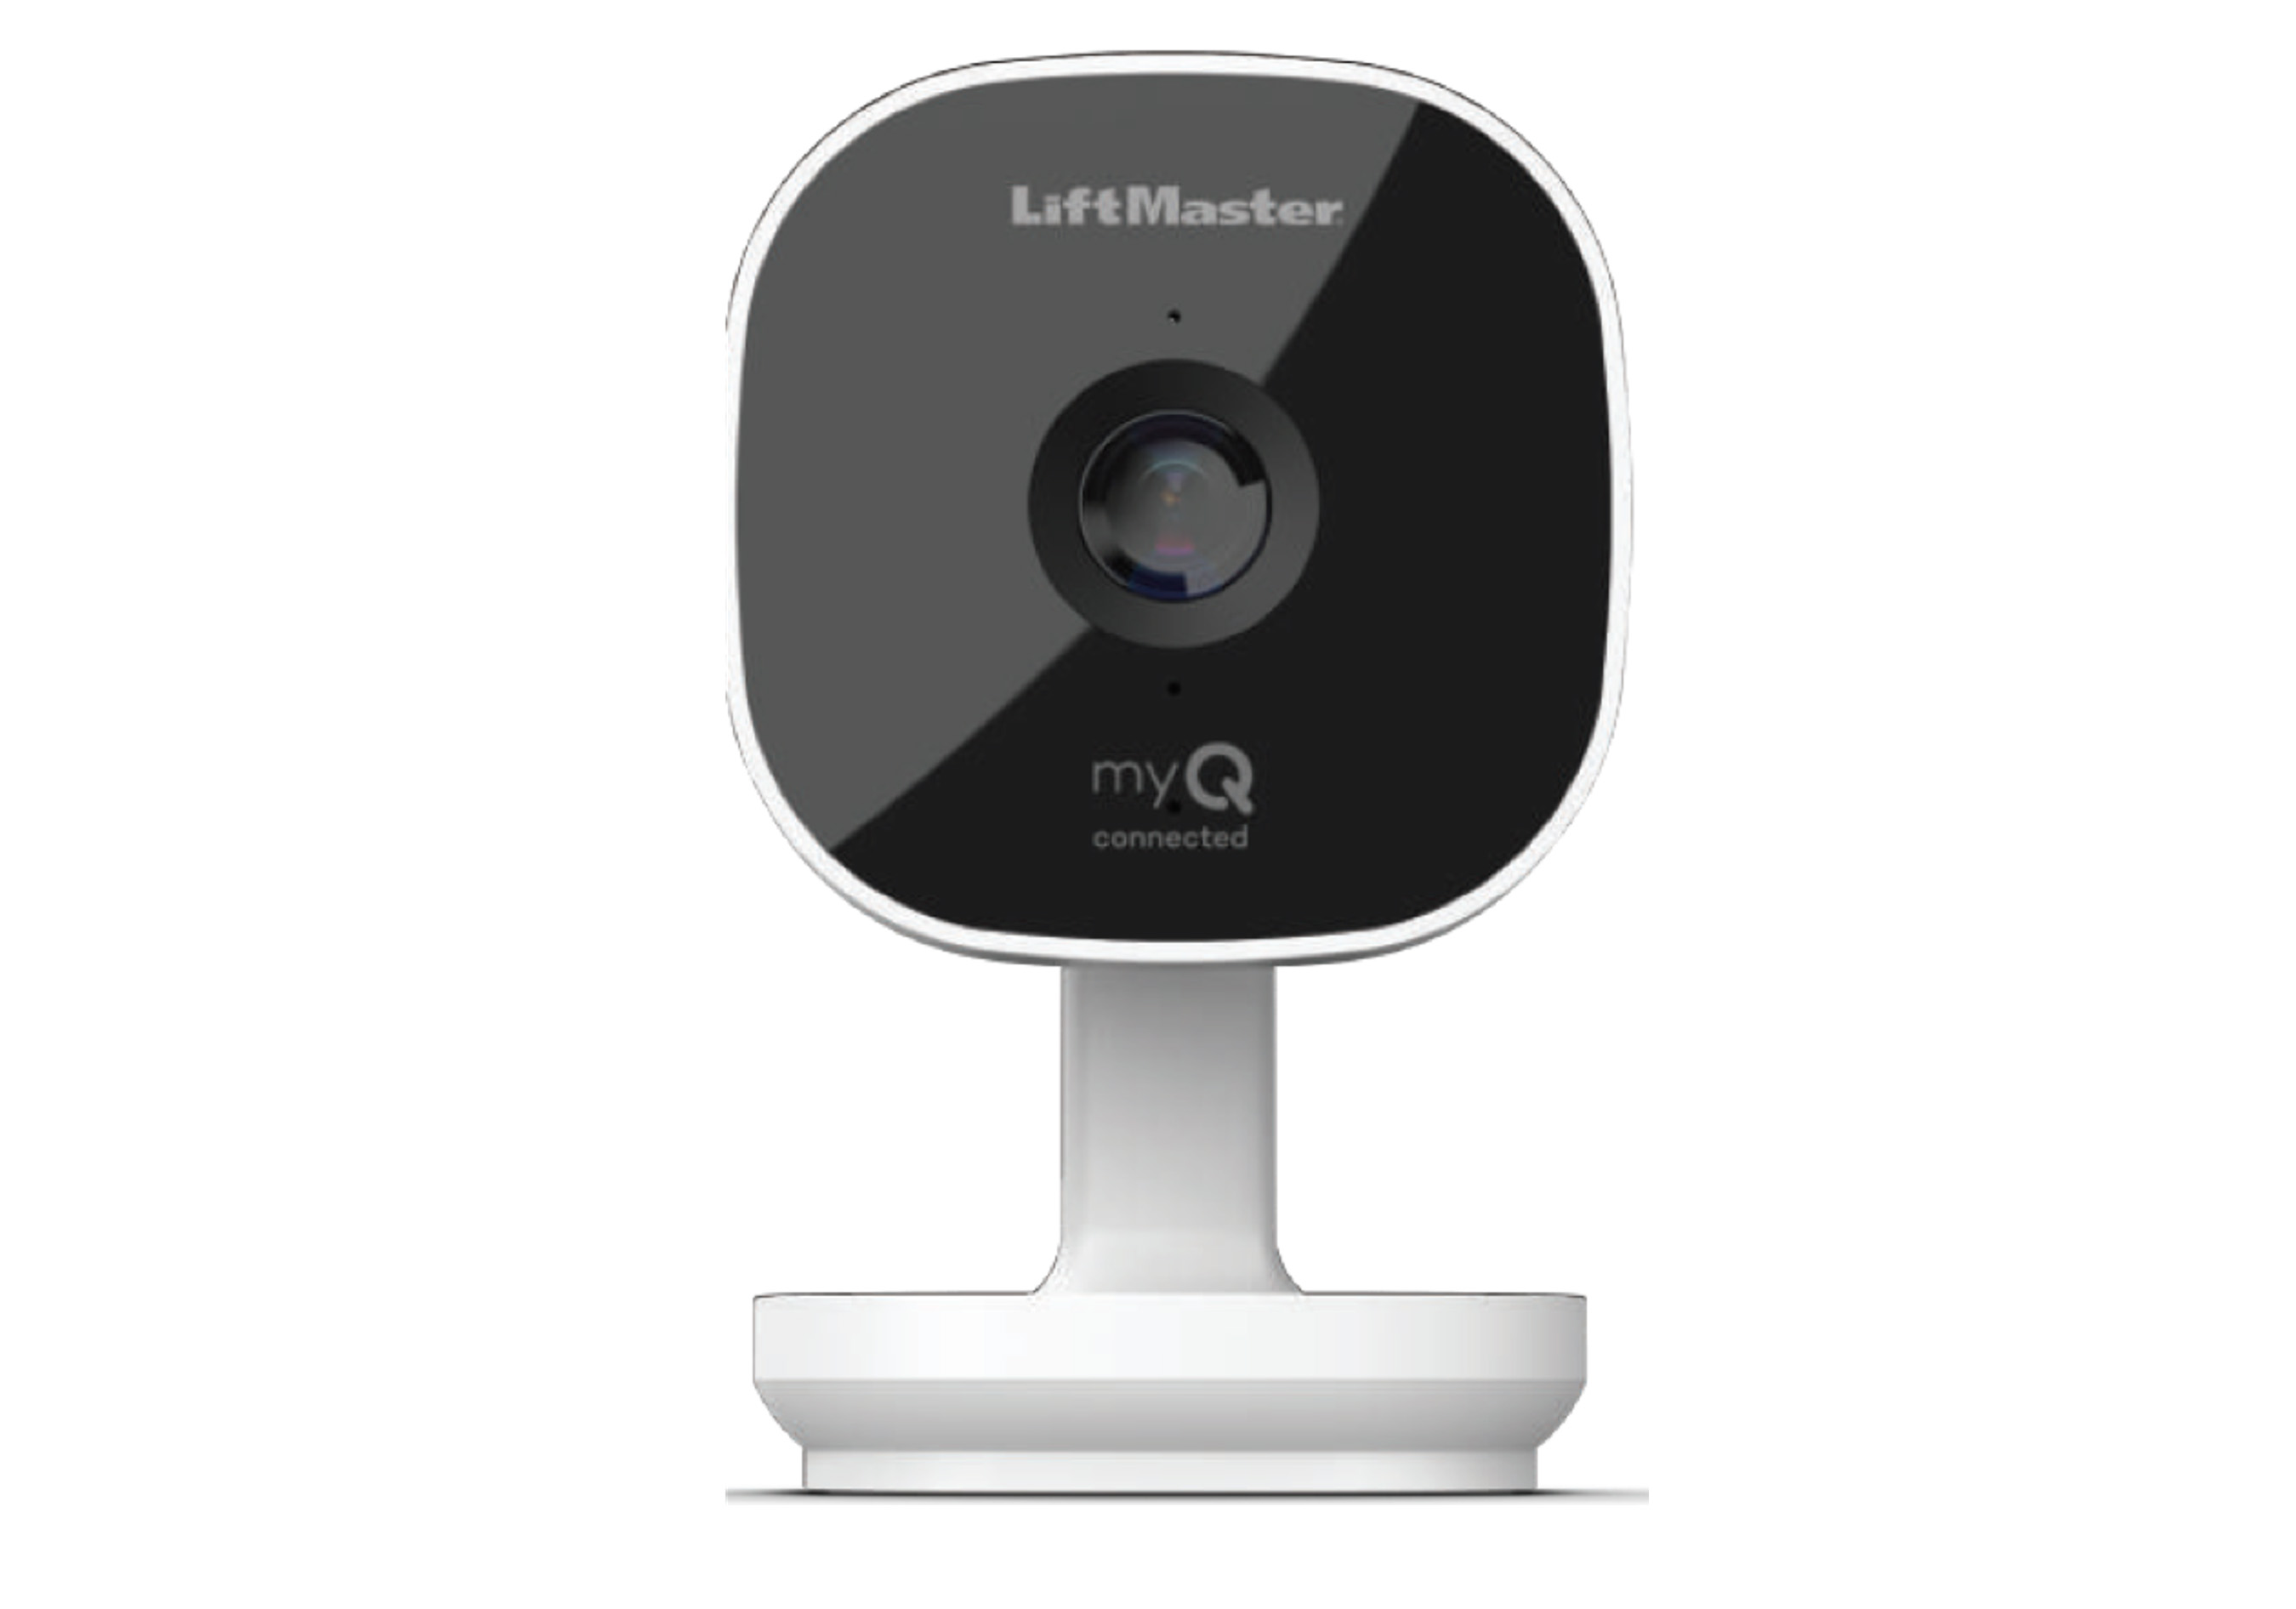 An easy upgrade to an existing myQ-connected garage door opener, the Smart Garage Camera can be quickly installed and connected for added convenience and security.